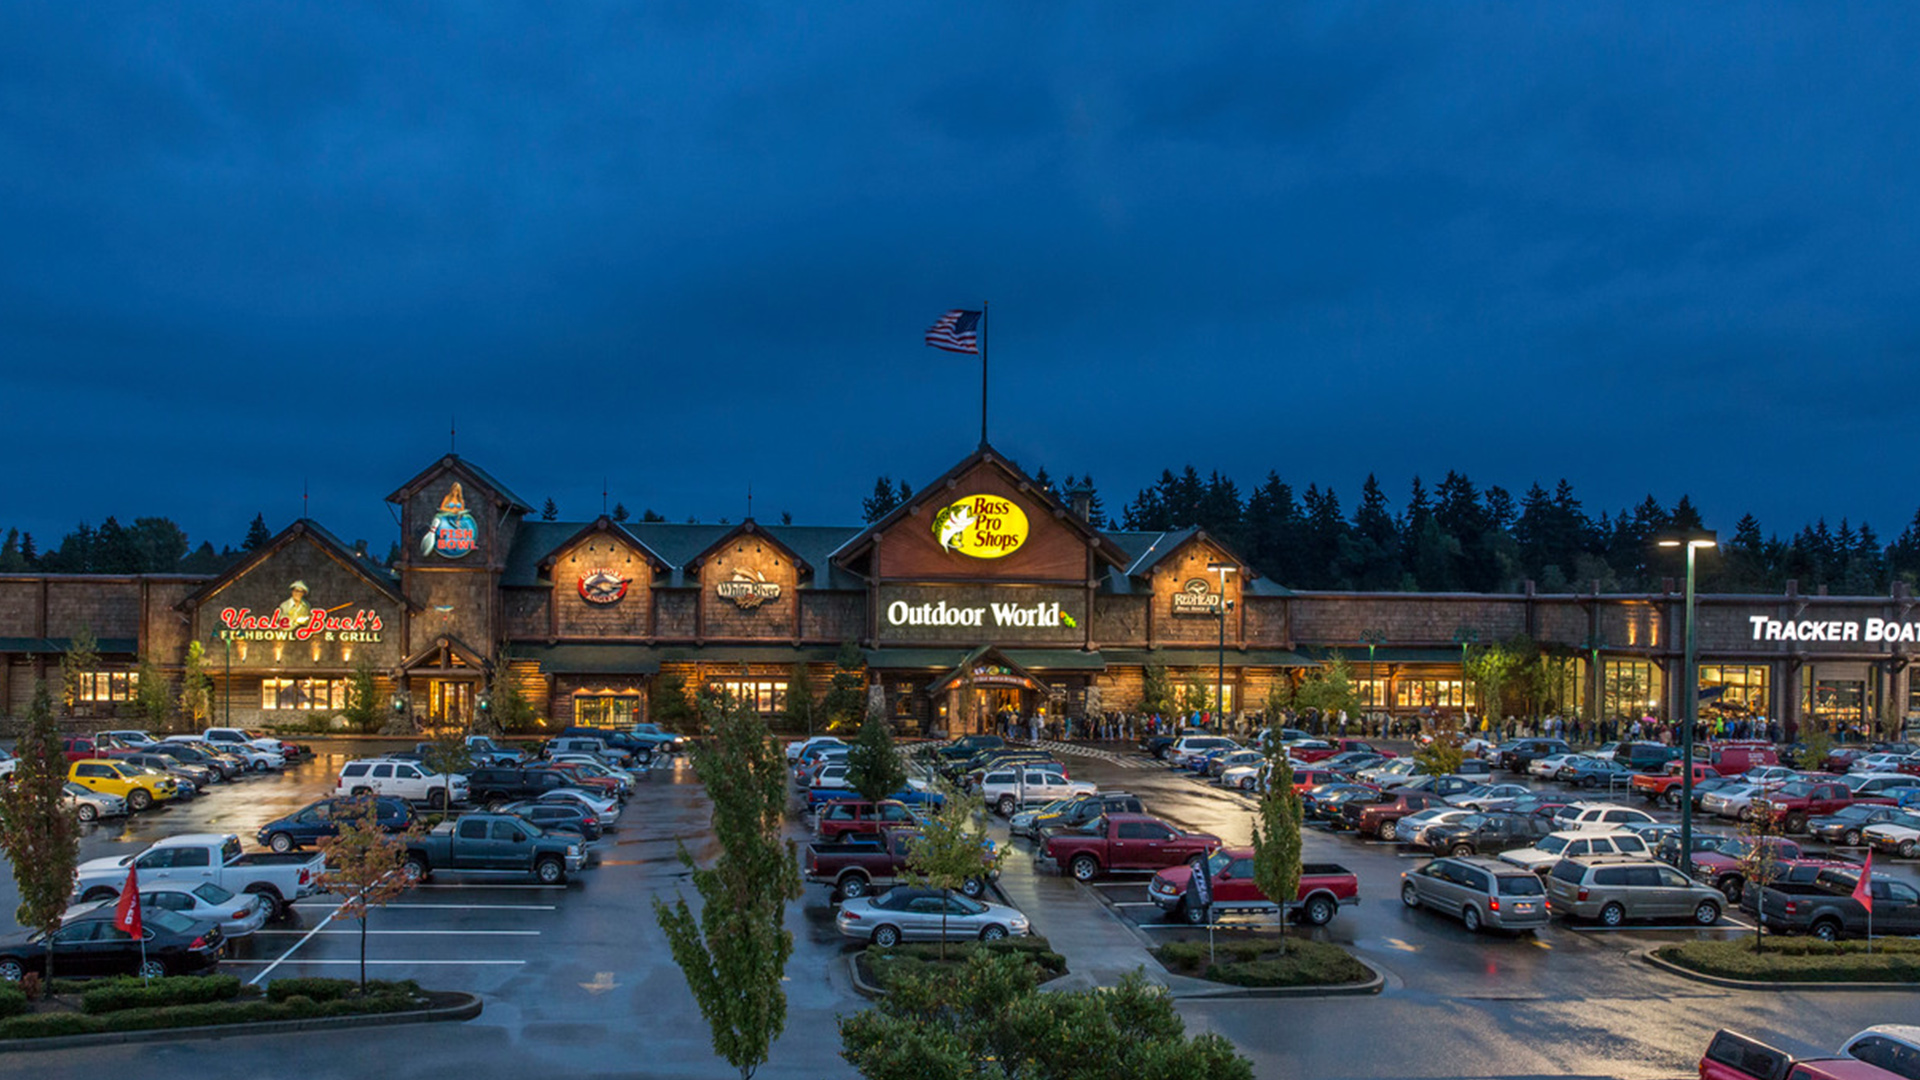 Bass Pro Shop's Labor Day Festival